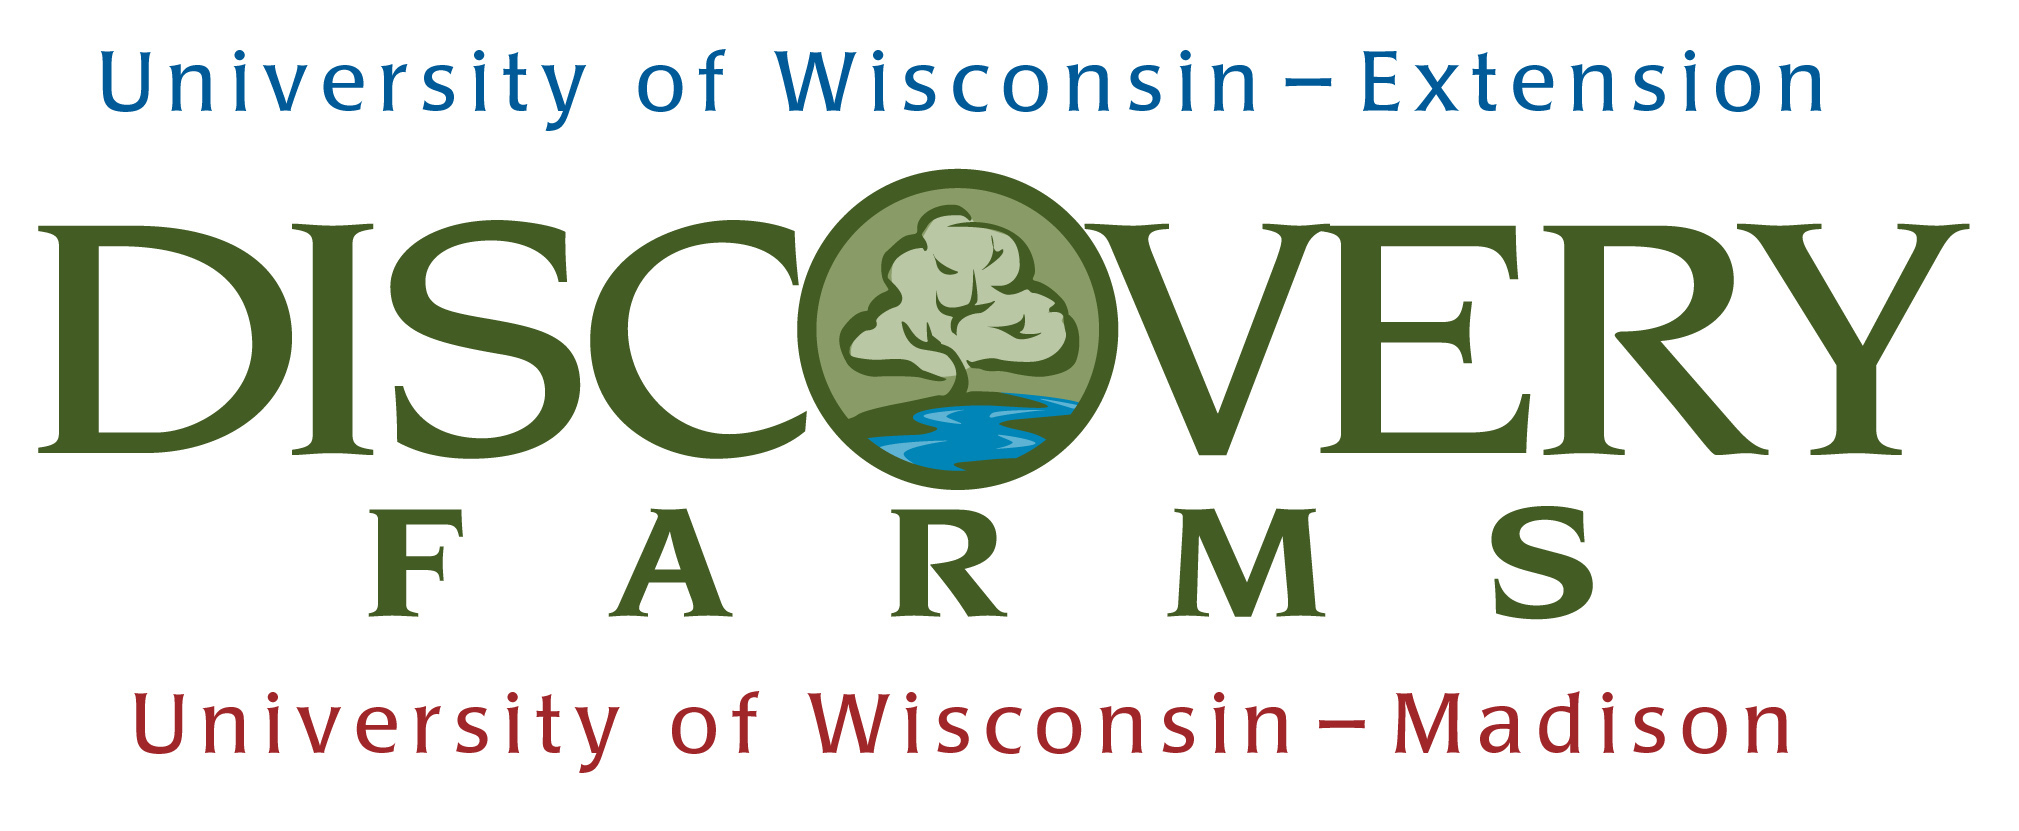 University of Wisconsin Discovery Farms Logo